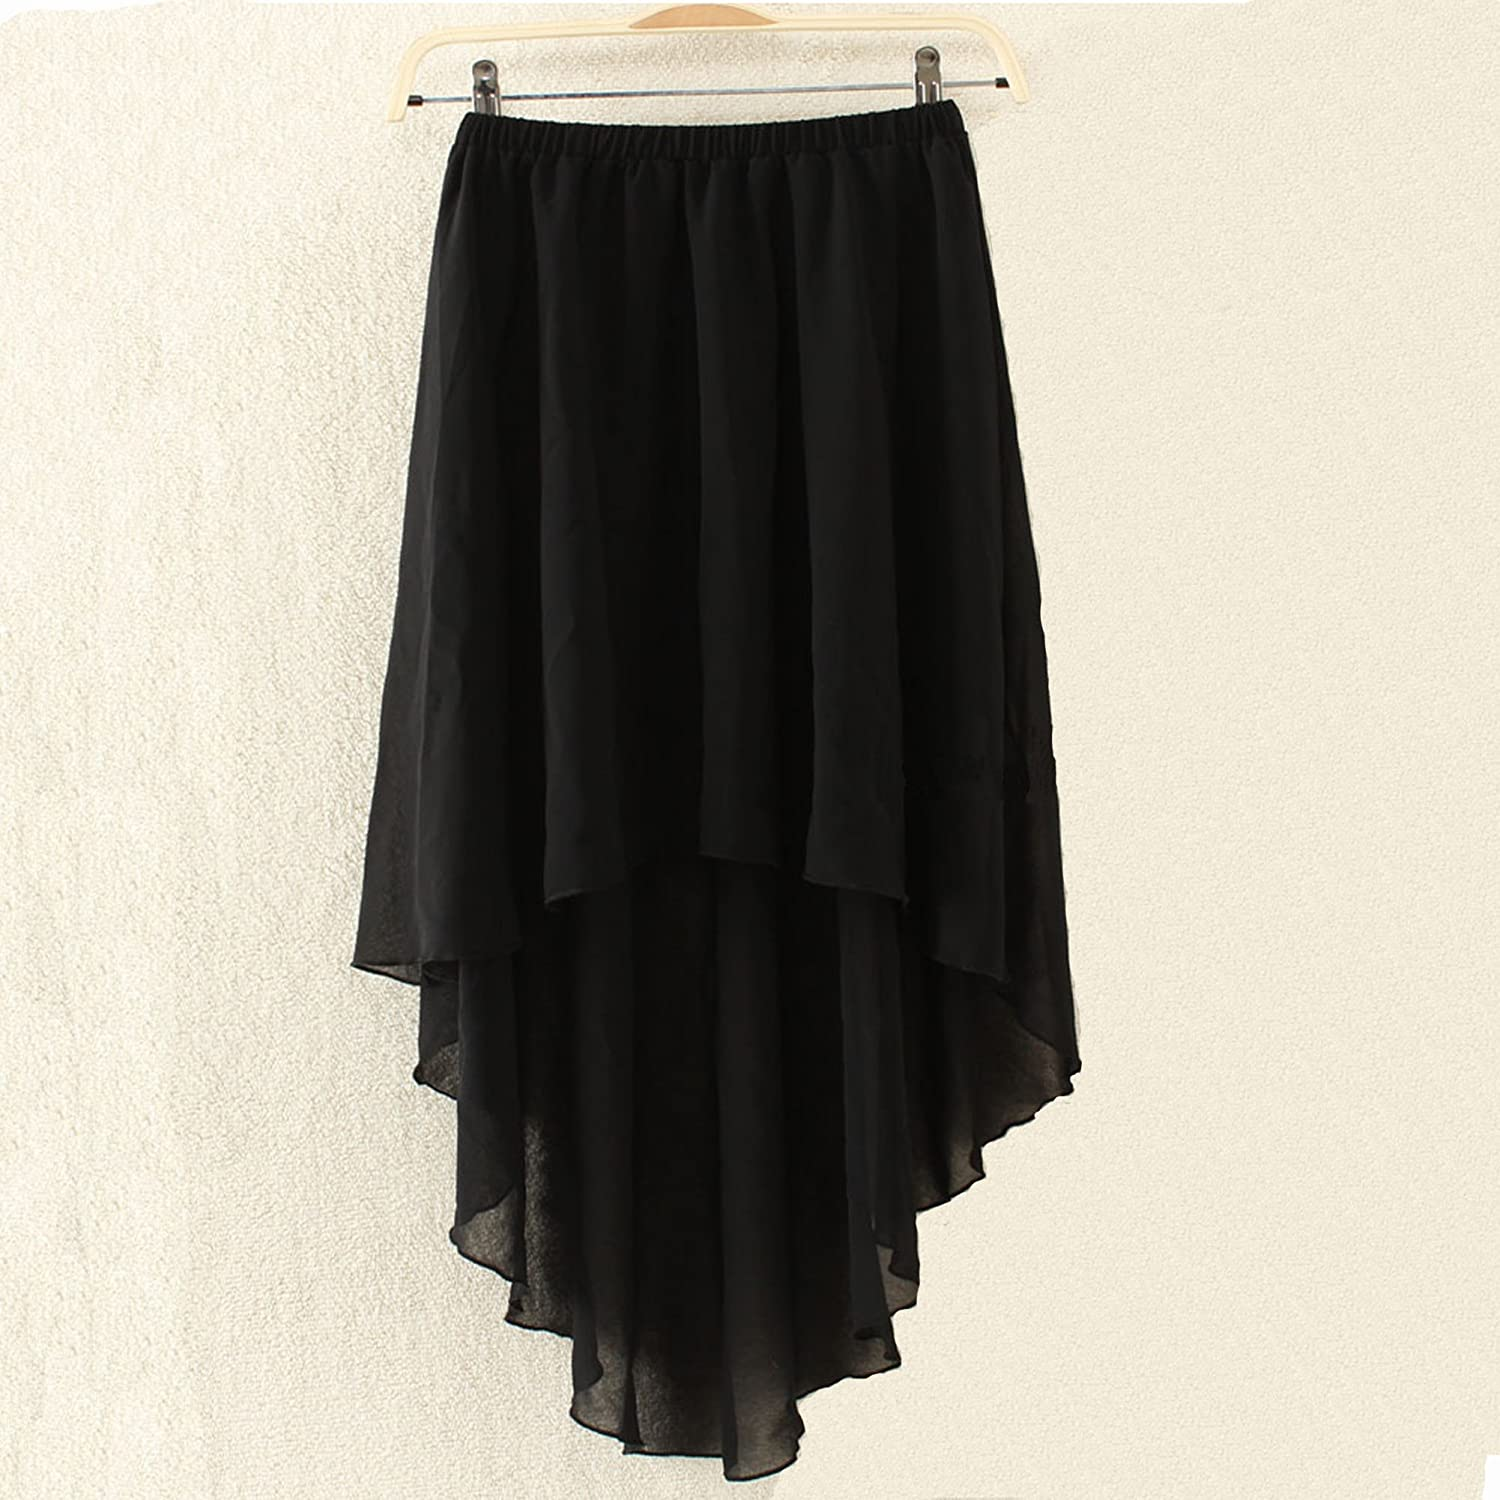 2014 New Arrival High Low Hem Chiffon Middle Skirt